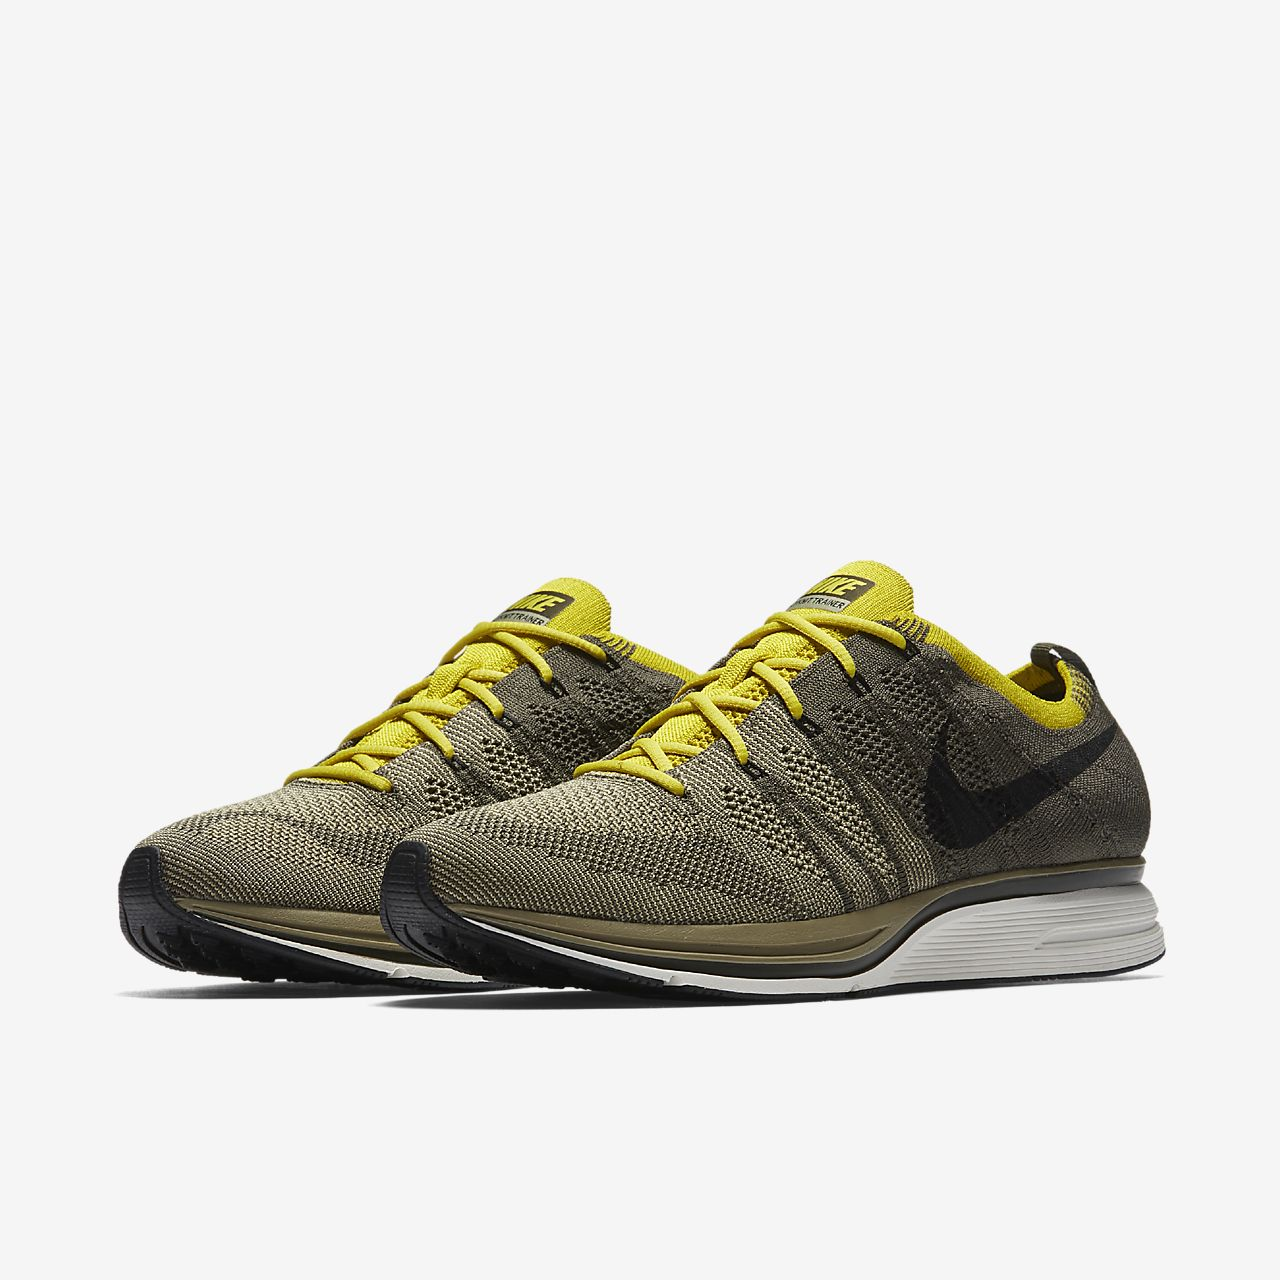 the best attitude 3bd87 1cb01 Chaussure mixte Nike Flyknit Trainer. Nike.com CA